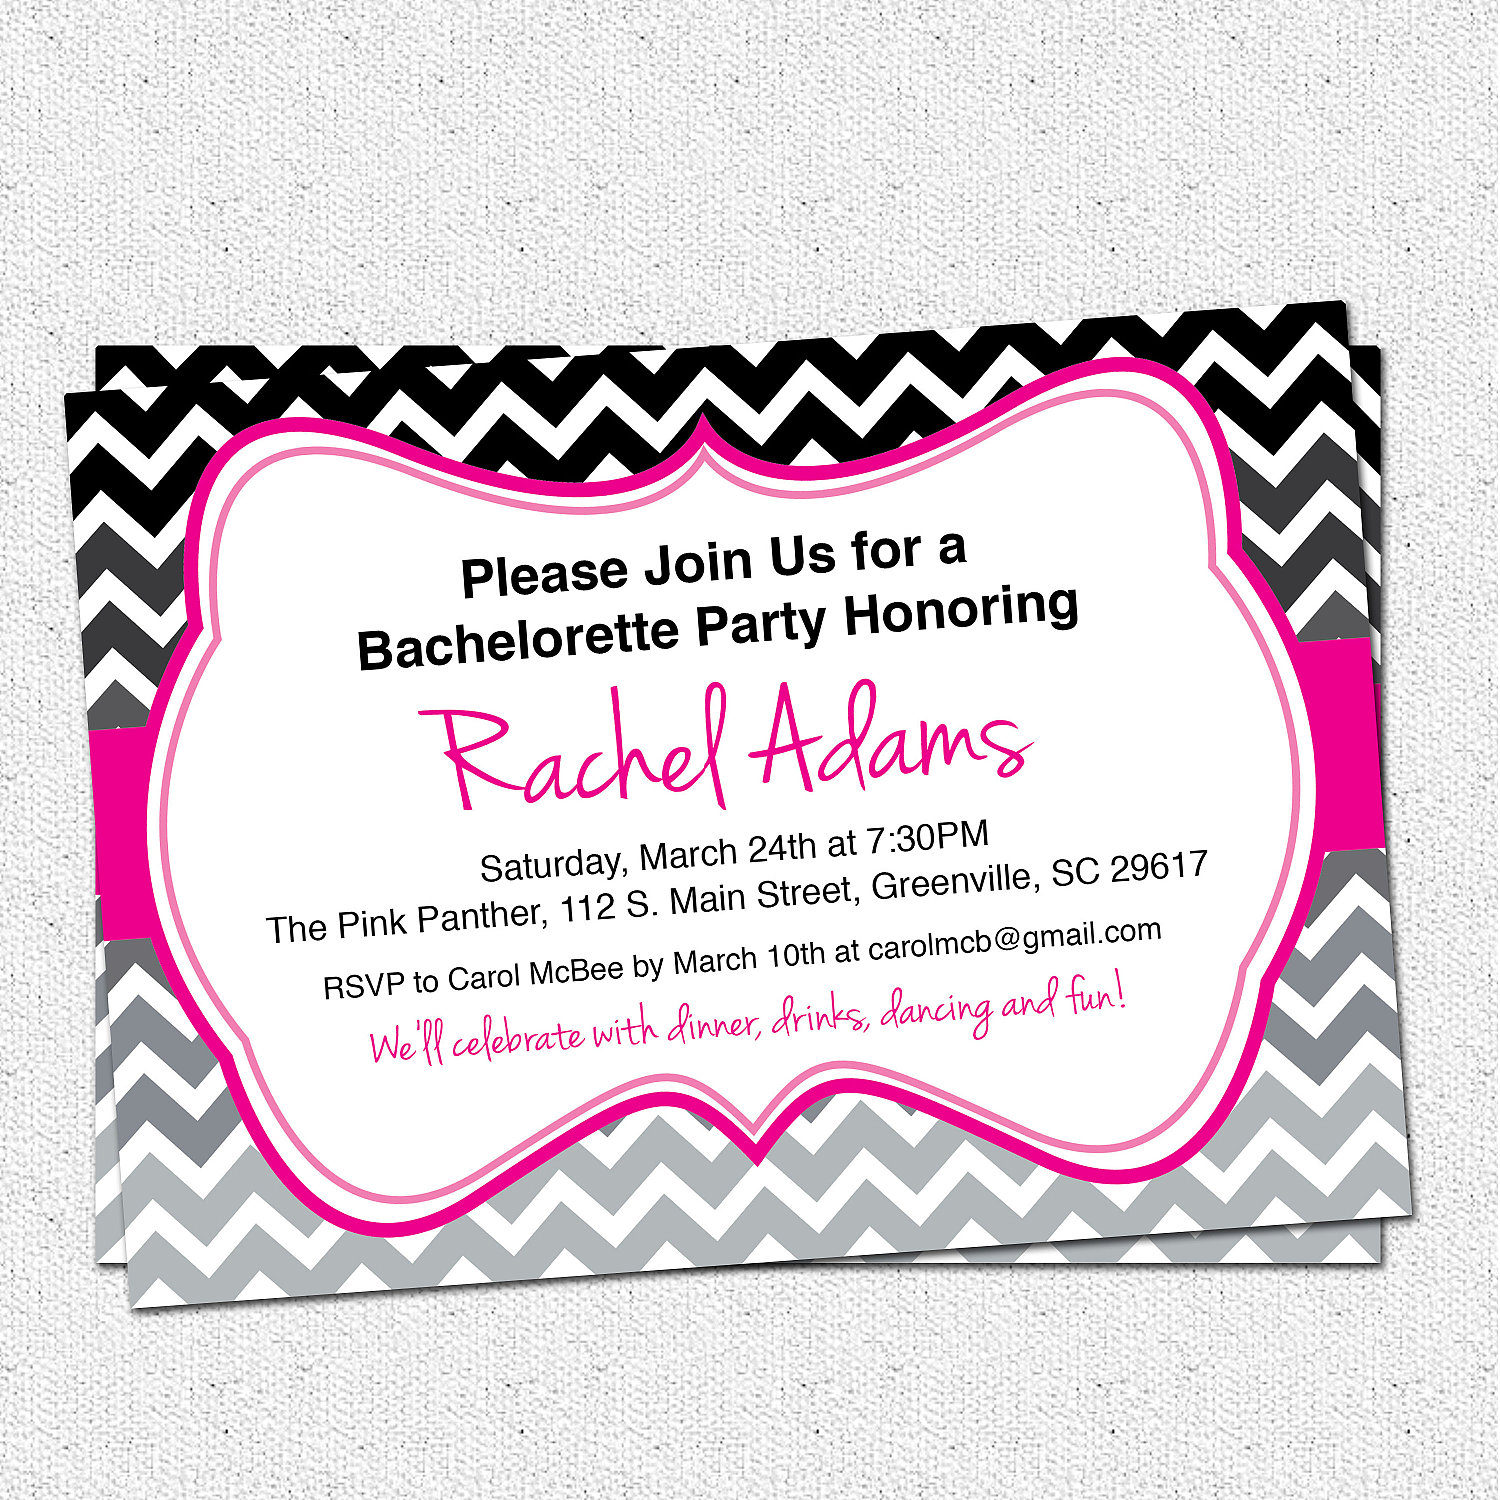 Bachelorette Party Invitations, Bridal Shower, Birthday, Chevron ...